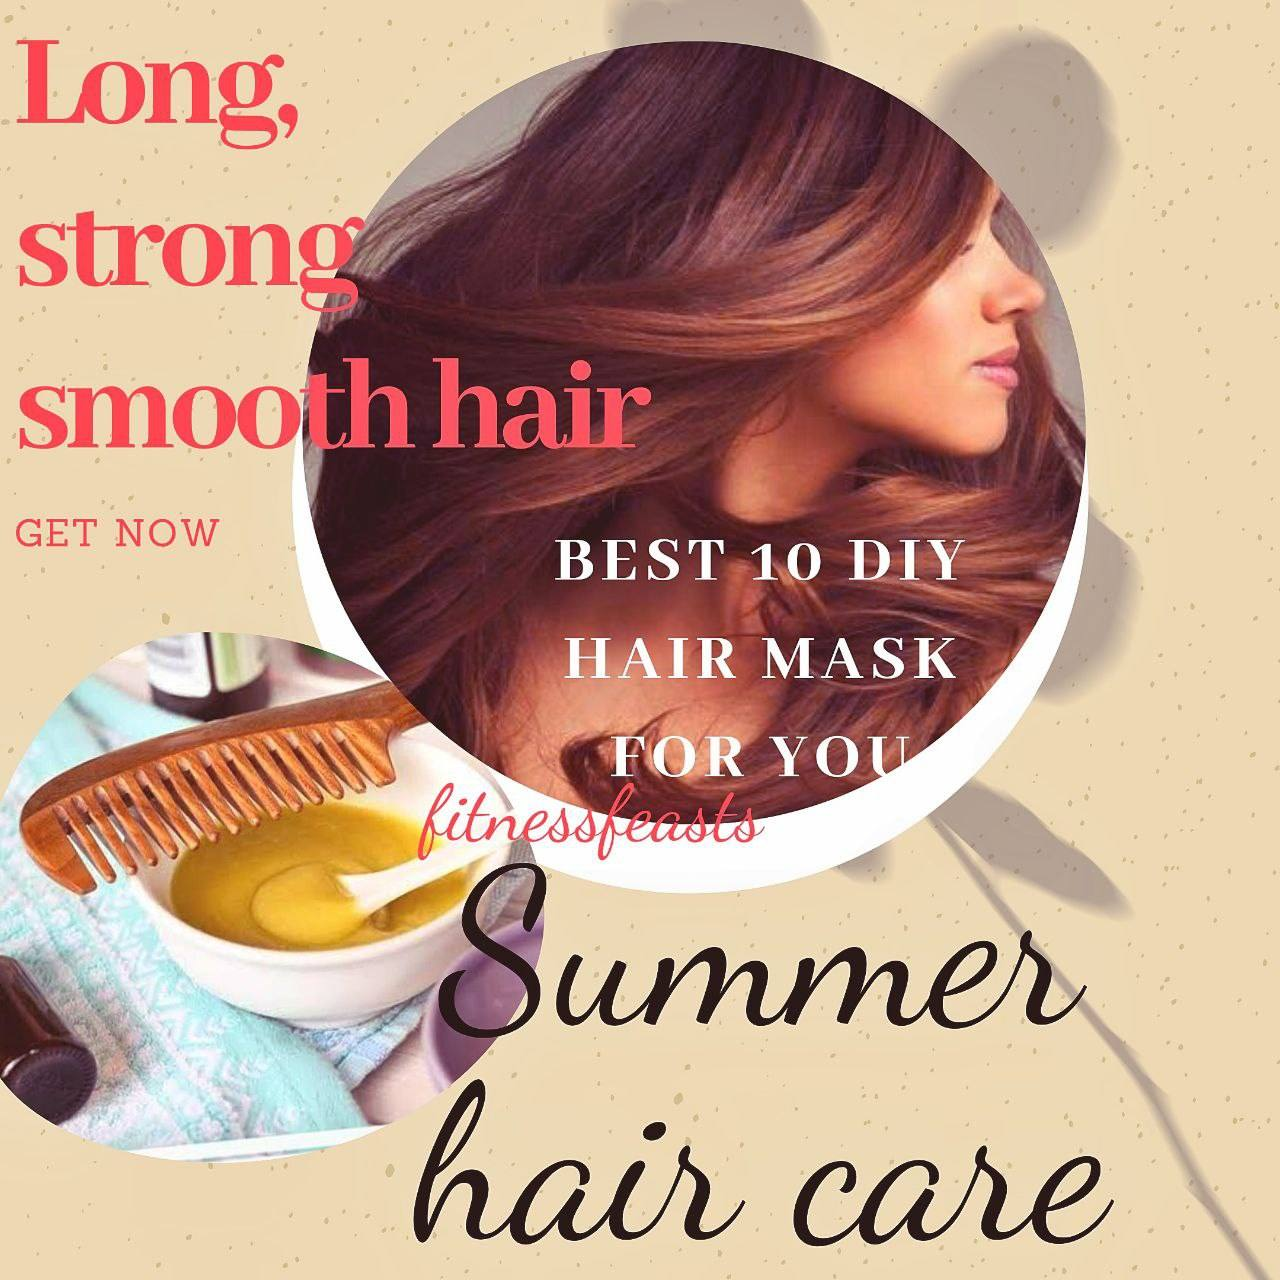 Diy Deep Conditioner Homemade Conditioner 10 Best Diy Hair Mask Recipes At Home Fitness Feast Food Fitness At Same Place